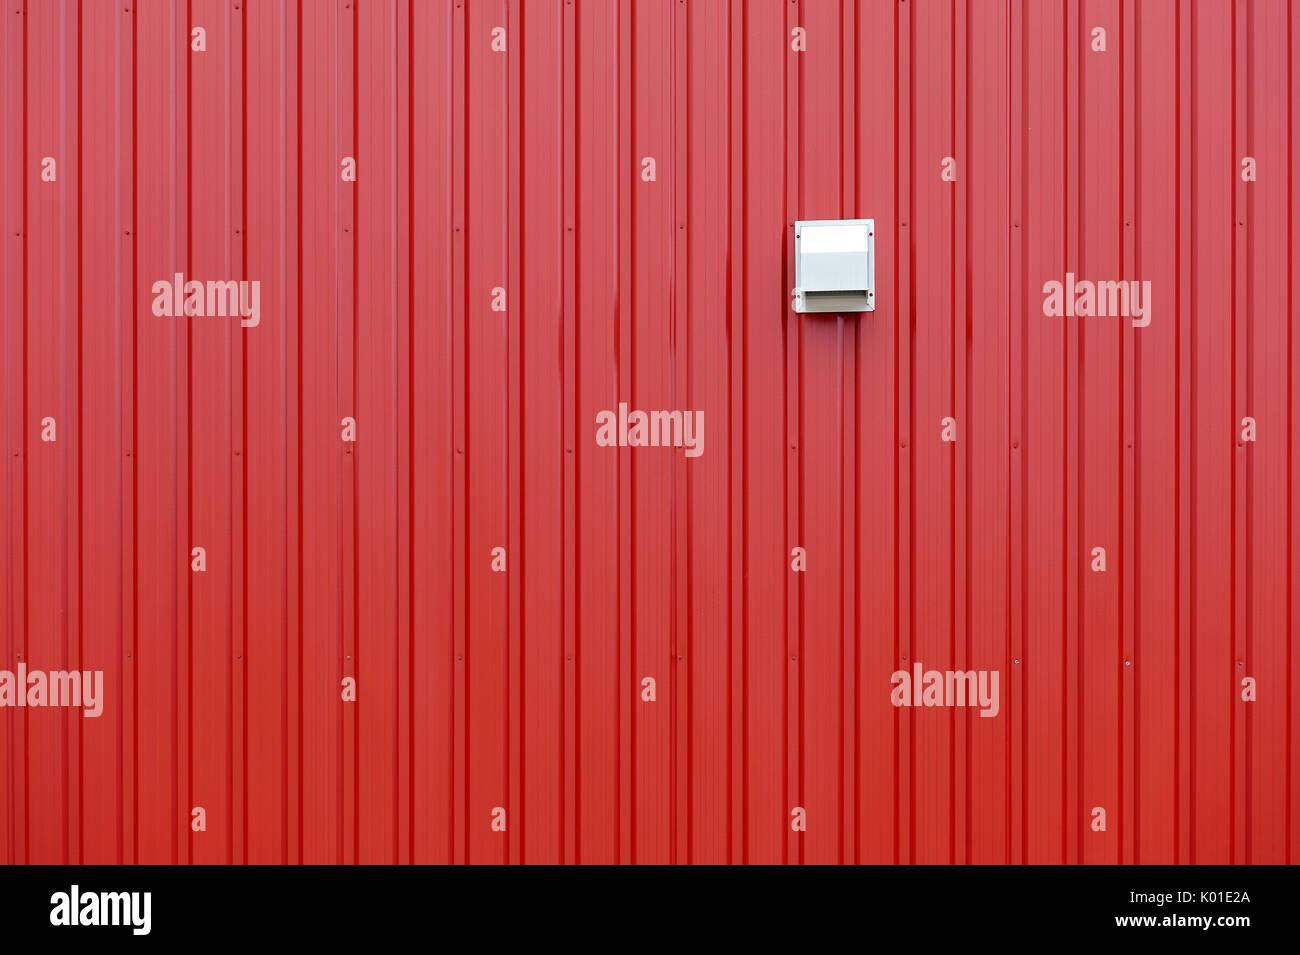 Wall Colourful Pattern Graphic Stockfotos & Wall Colourful Pattern ...